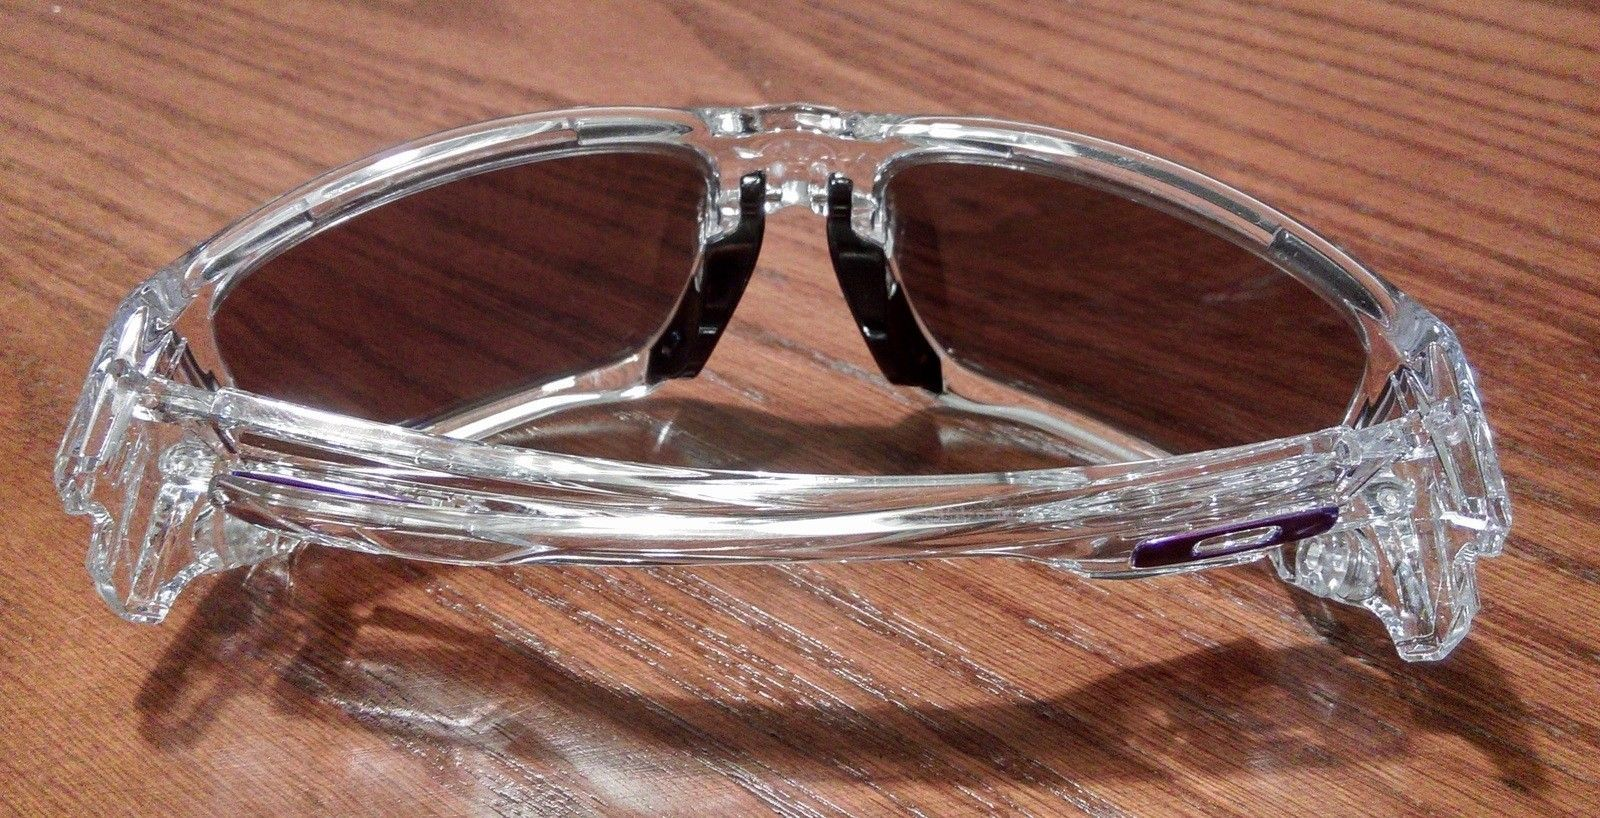 Polished Clear Asian Fit Style Switch - Chrome Irid & Grey lenses - gVbH5Uk.jpg